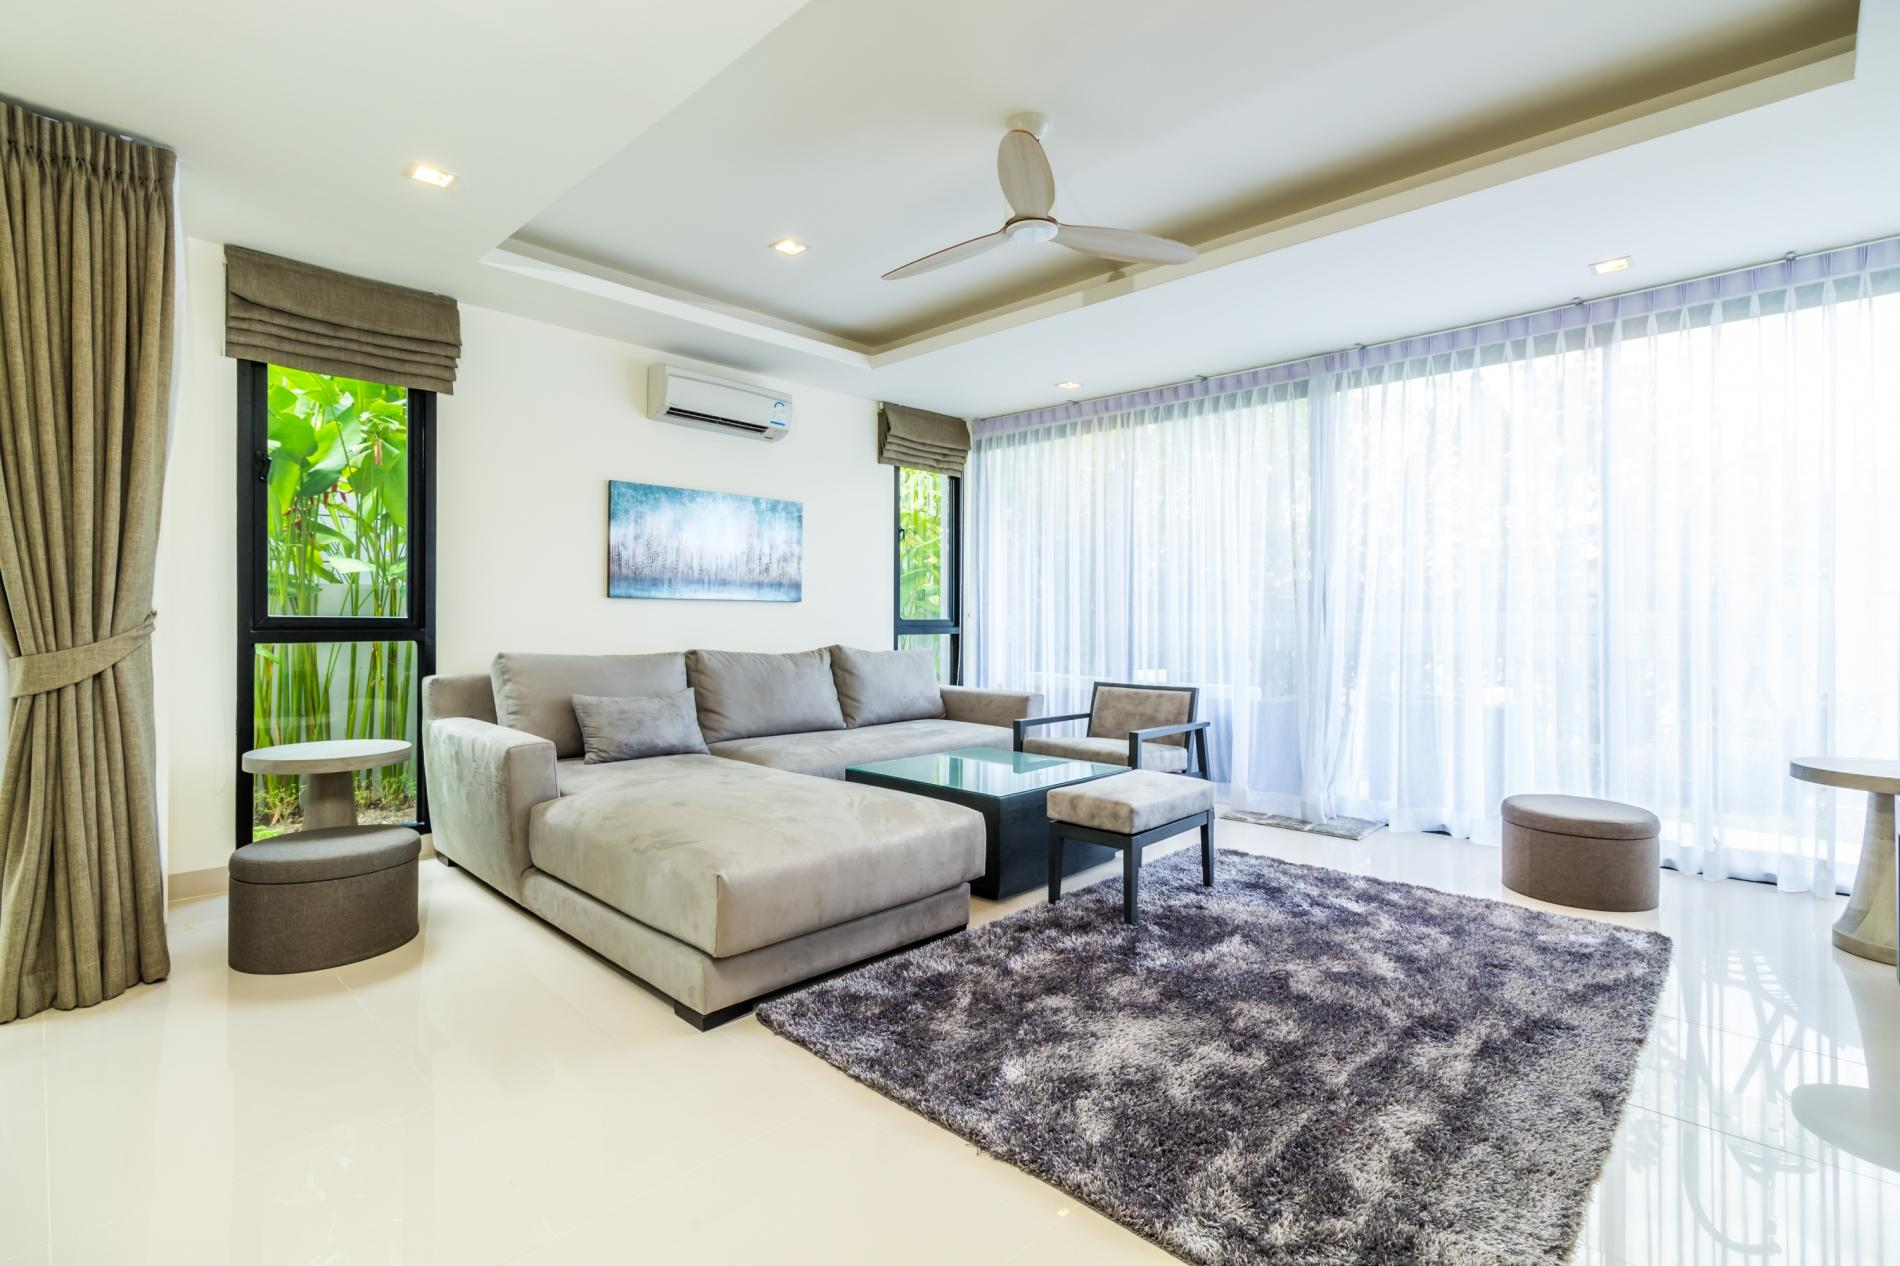 Apartment LP101 - Private rooftop pool villa in Laguna for 9 people  near restaurants and shops photo 20318430